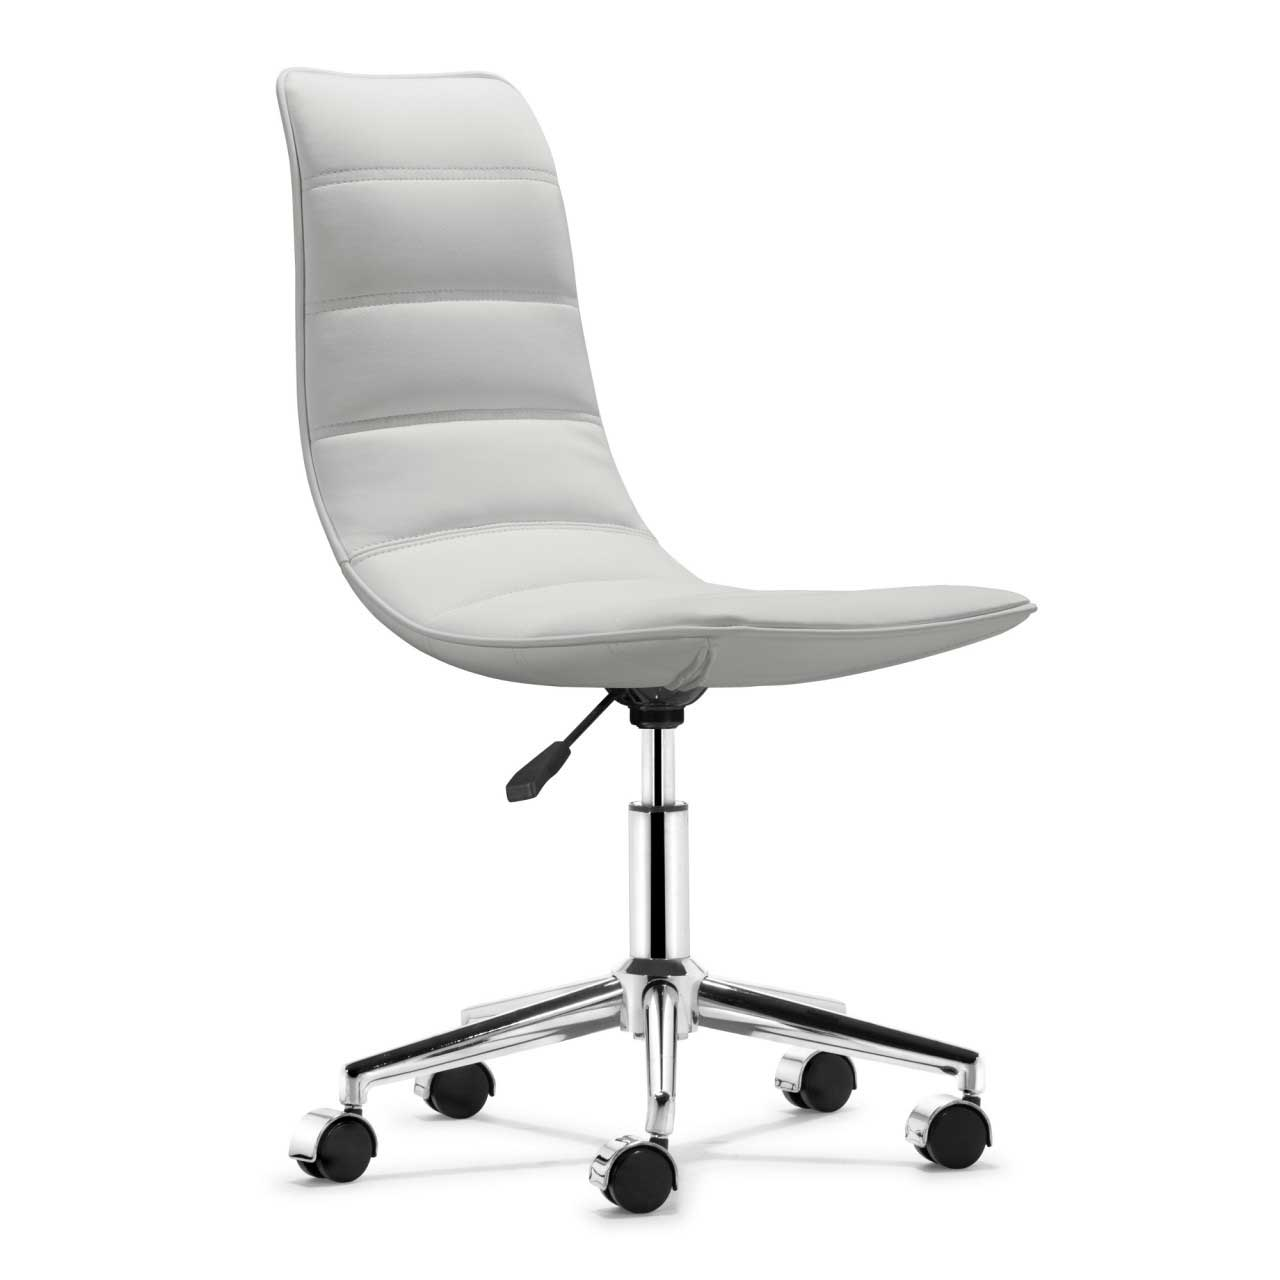 Office Chair White White Office Chair Design And Style